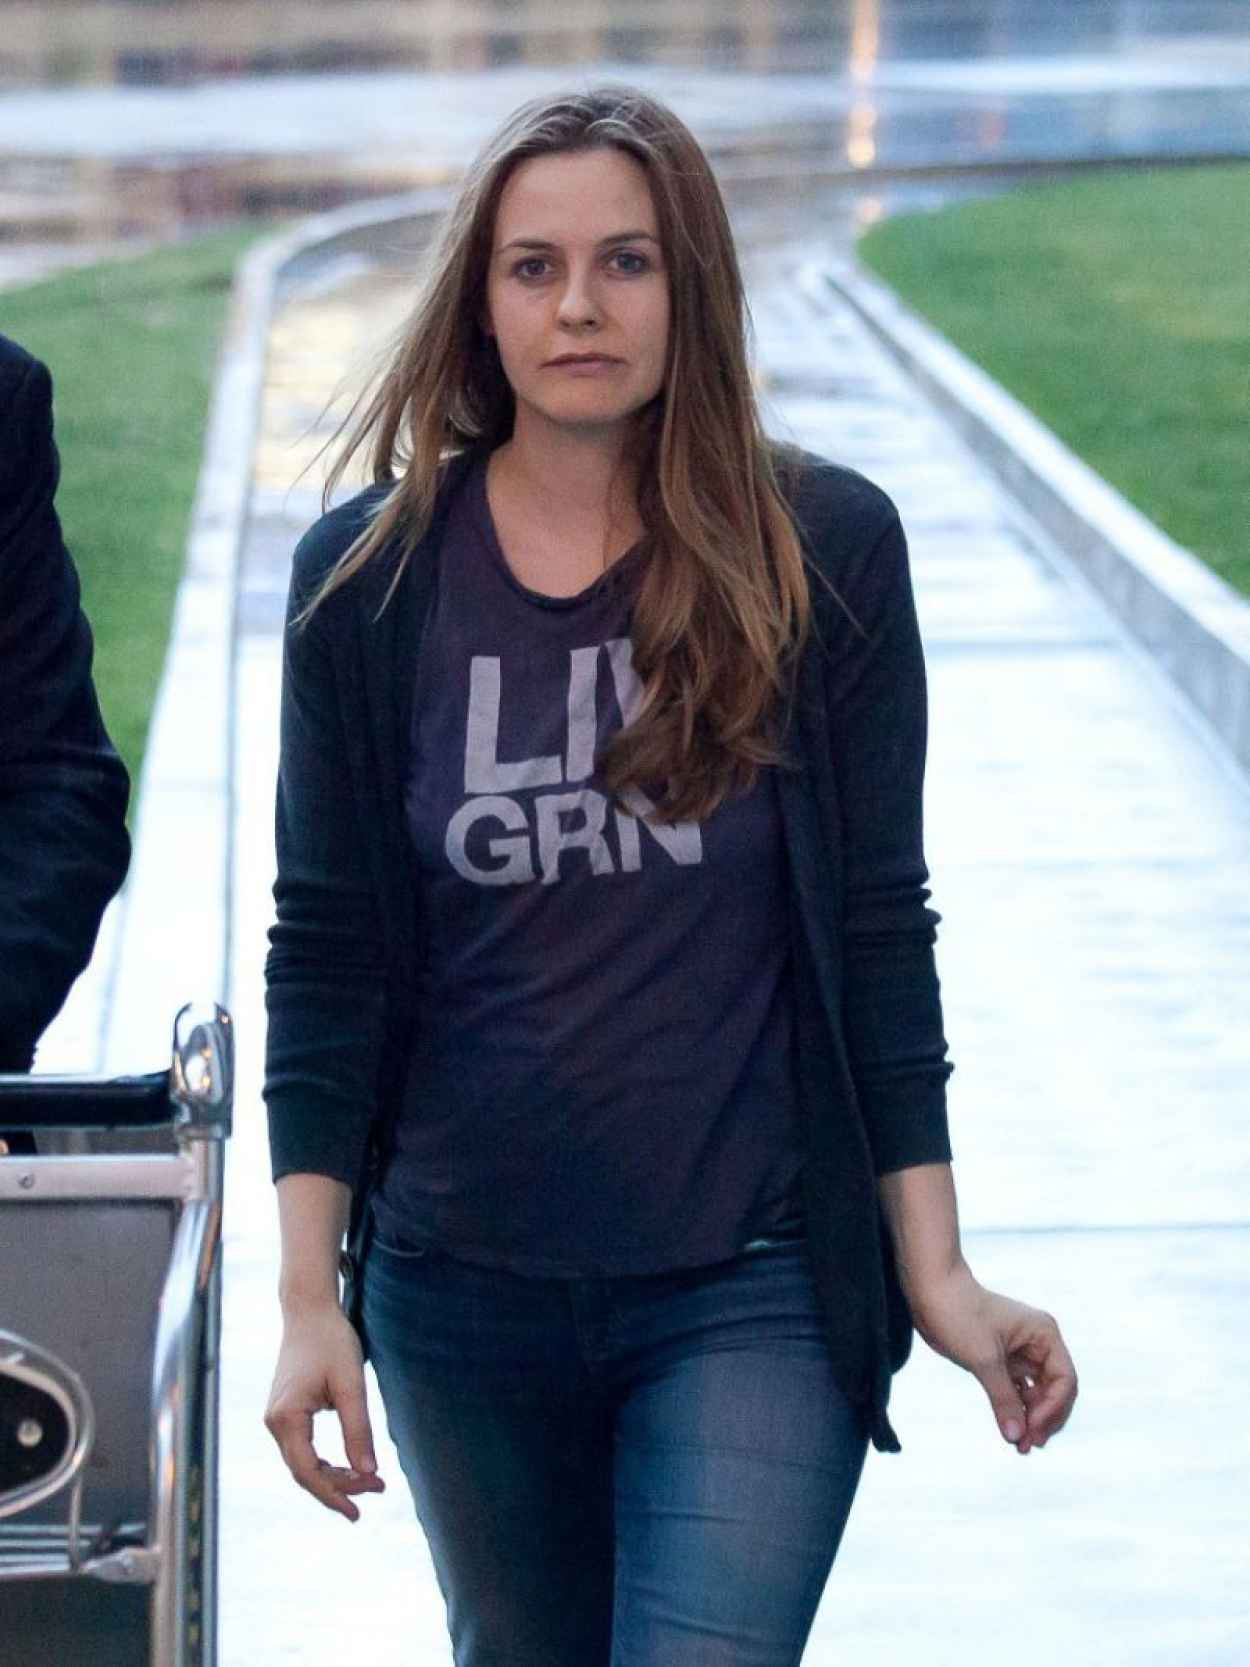 Alicia Silverstone in Jeans at LAX Airport - February 2015-5